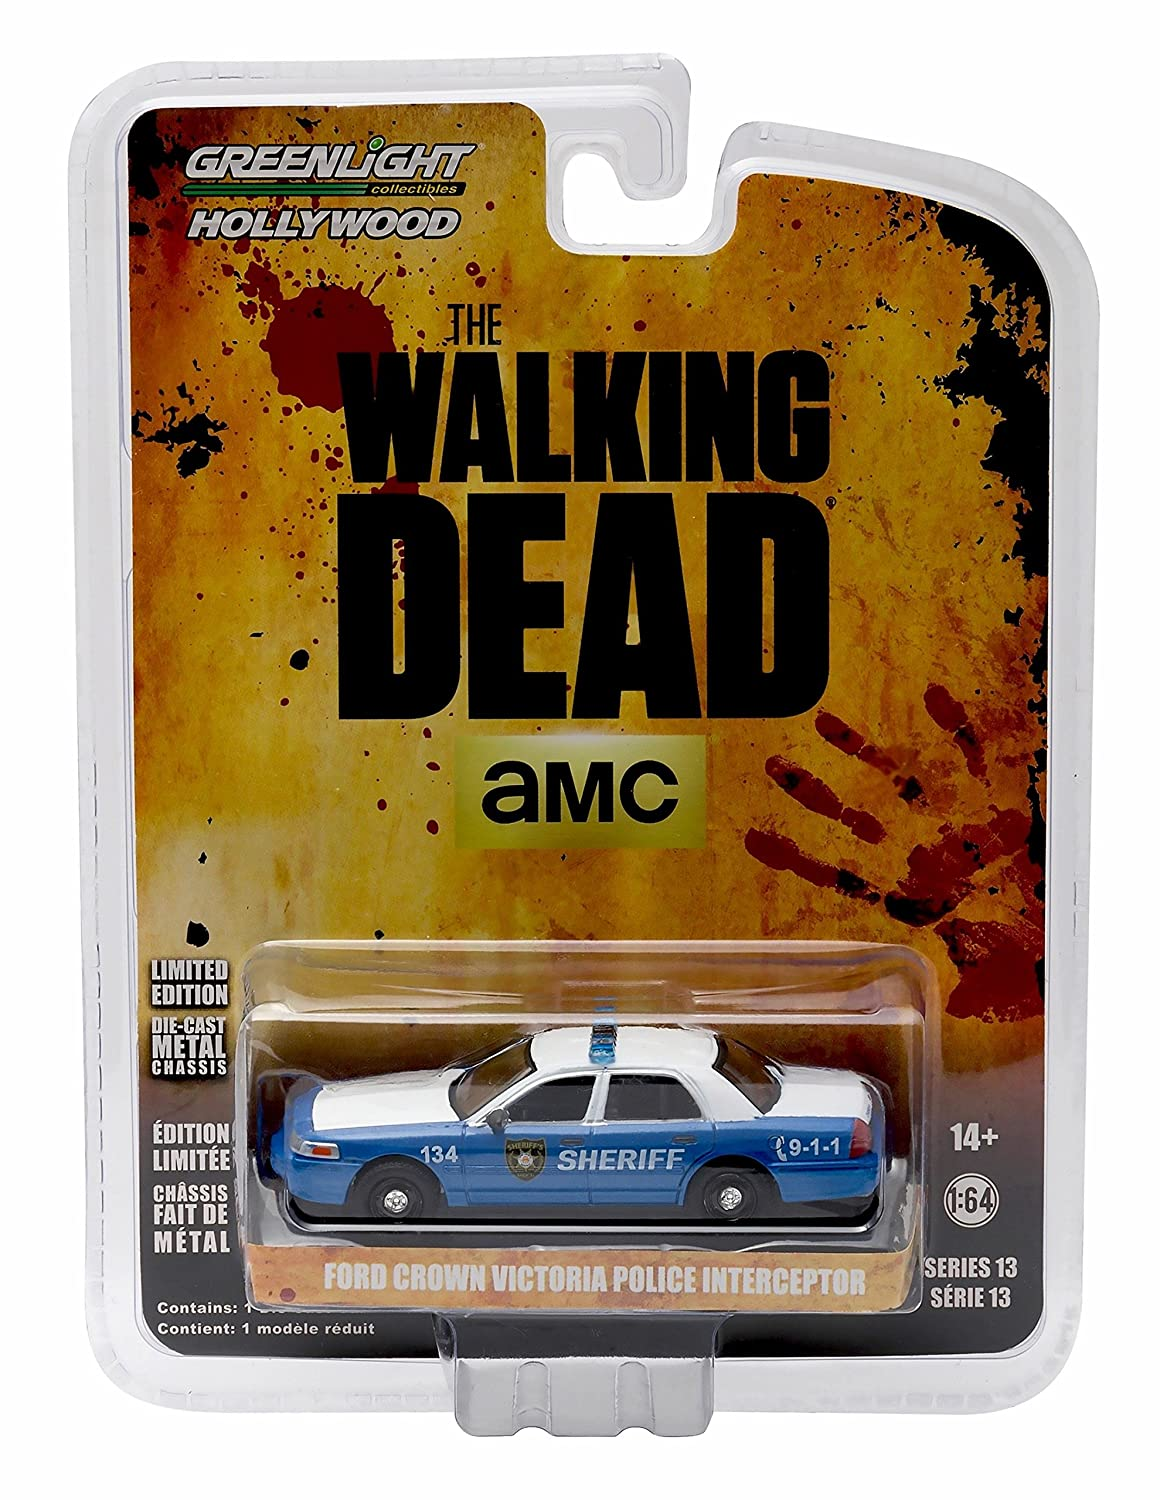 Rick Shane's FORD CROWN VICTORIA POLICE INTERCEPTOR Linden County Georgia Sheriff from THE WALKING DEAD * GL Hollywood Series 13 * 2016 Greenlight Collectibles 1 64 Scale Die Cast Vehicle